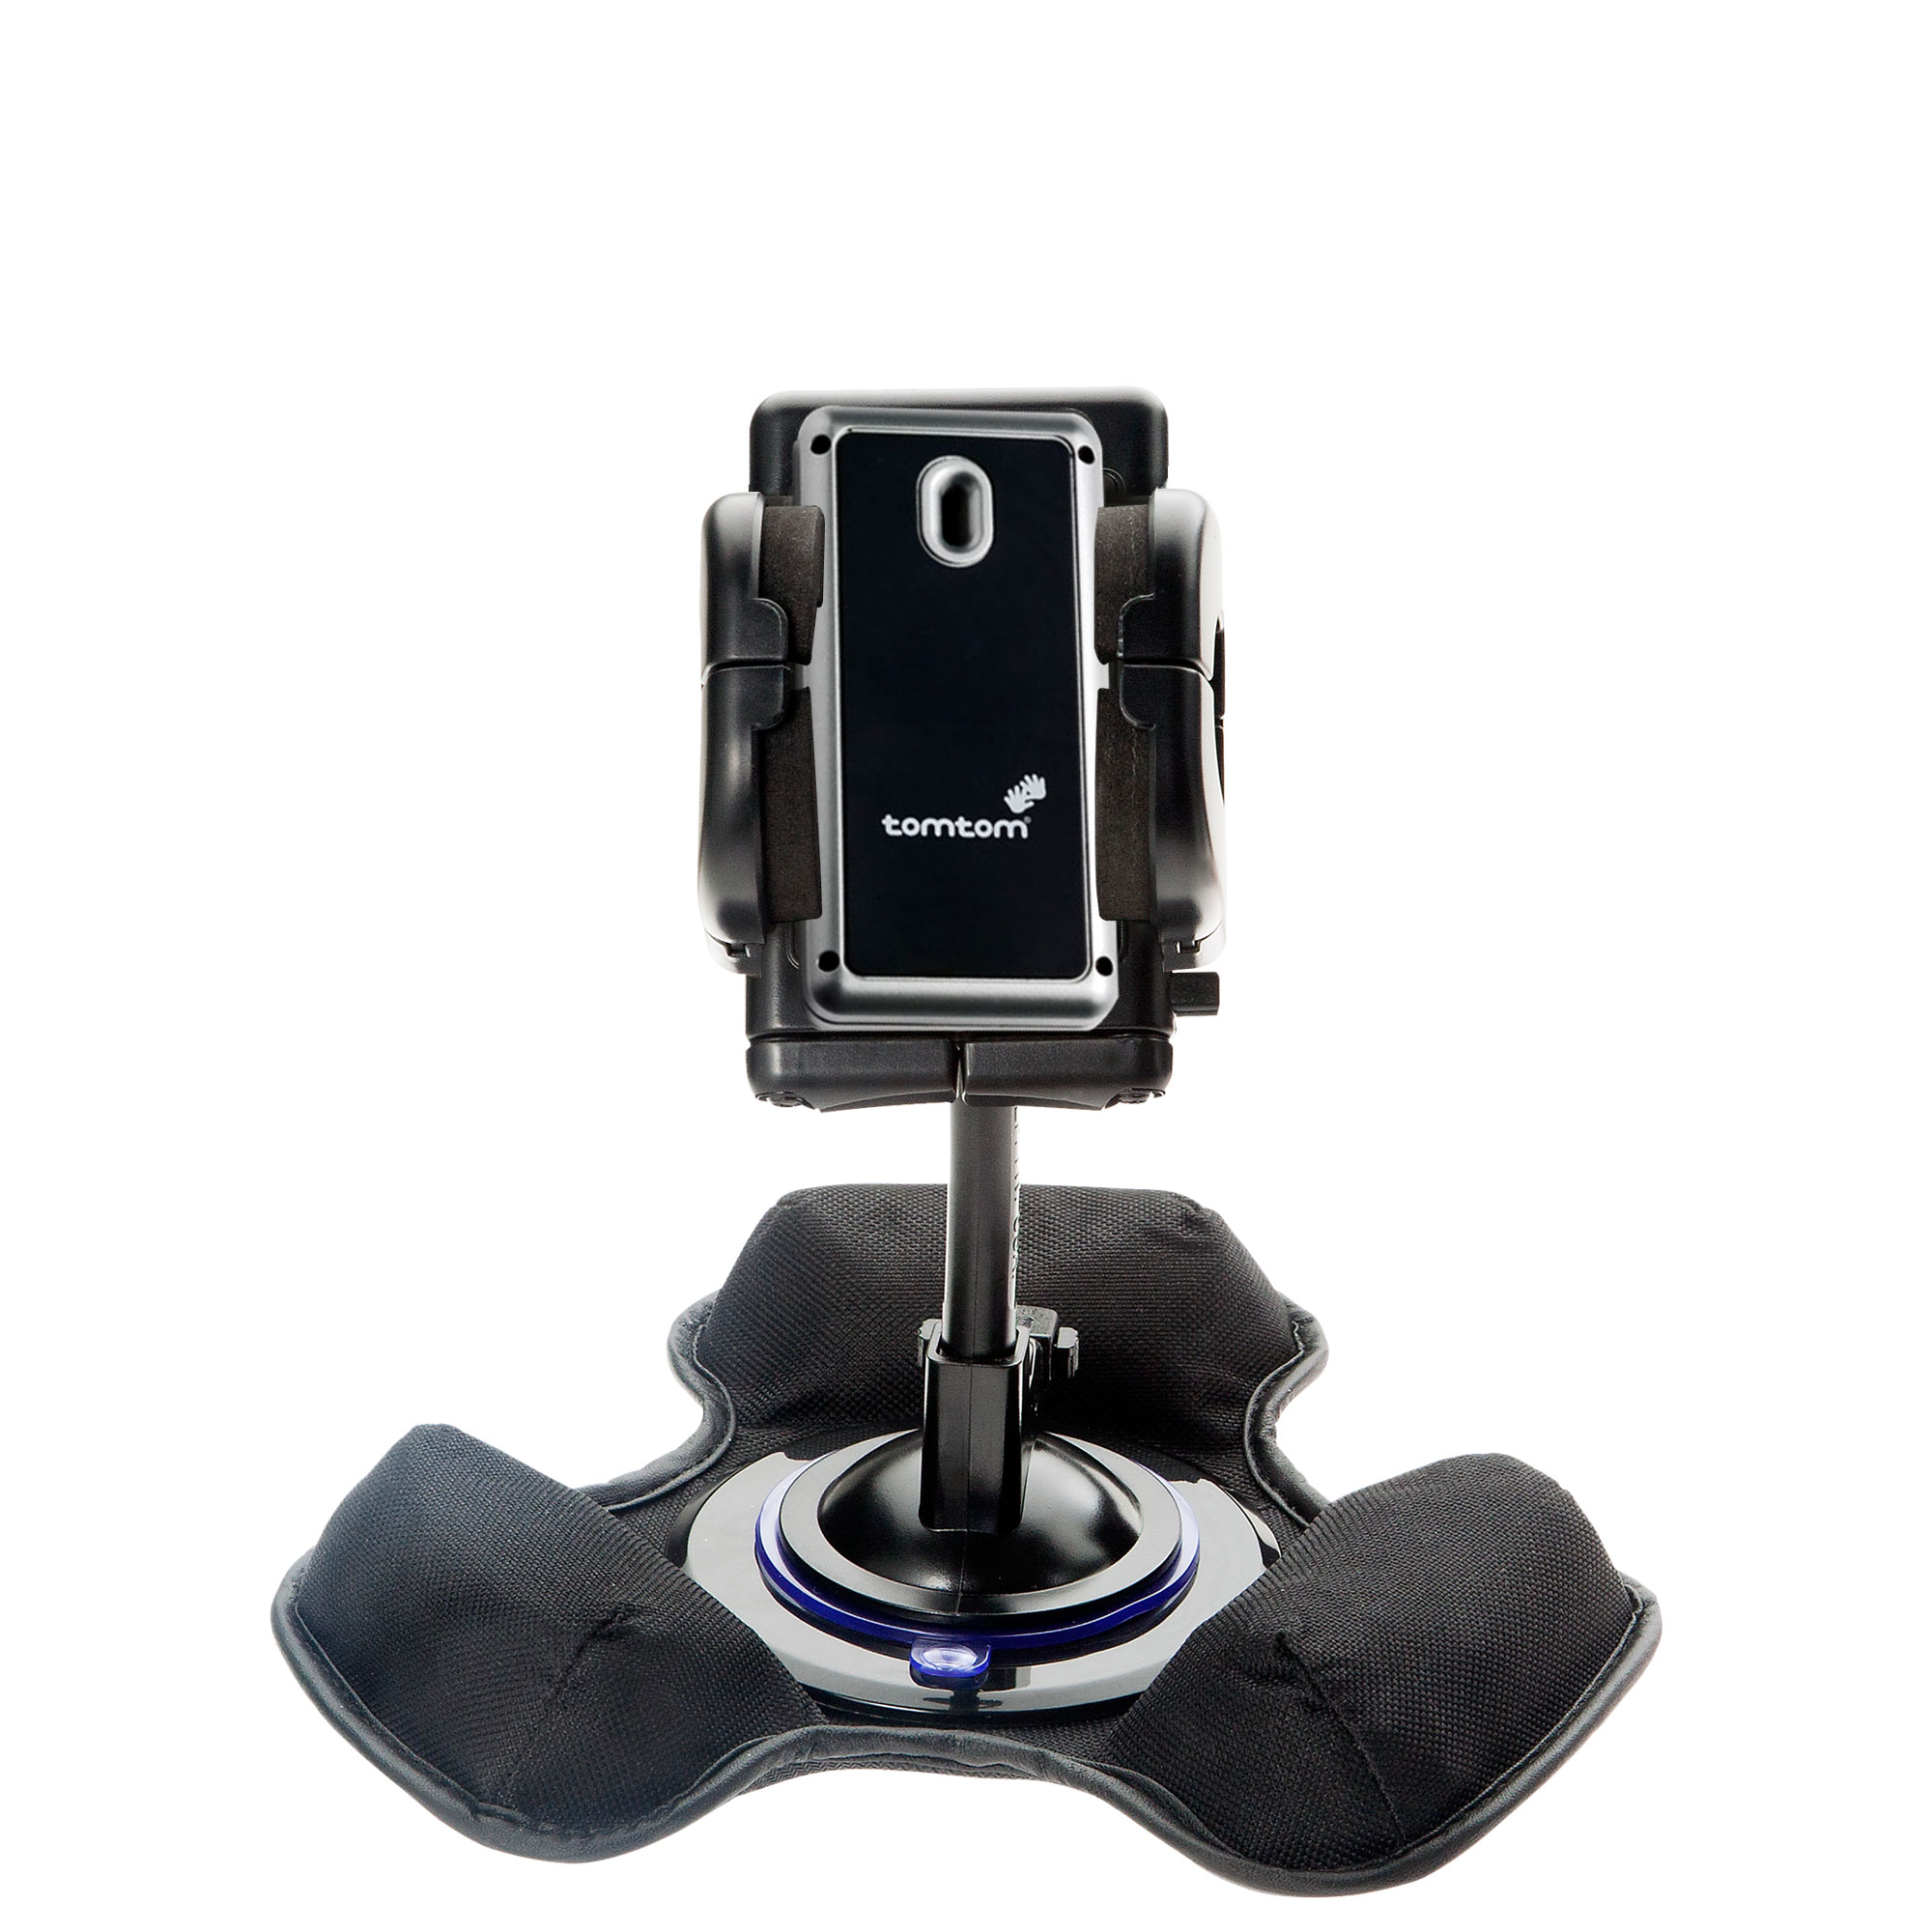 Car / Truck Vehicle Holder Mounting System for TomTom Navigator 5 Includes Unique Flexible Windshield Suction and Universal Dashboard Mount Options